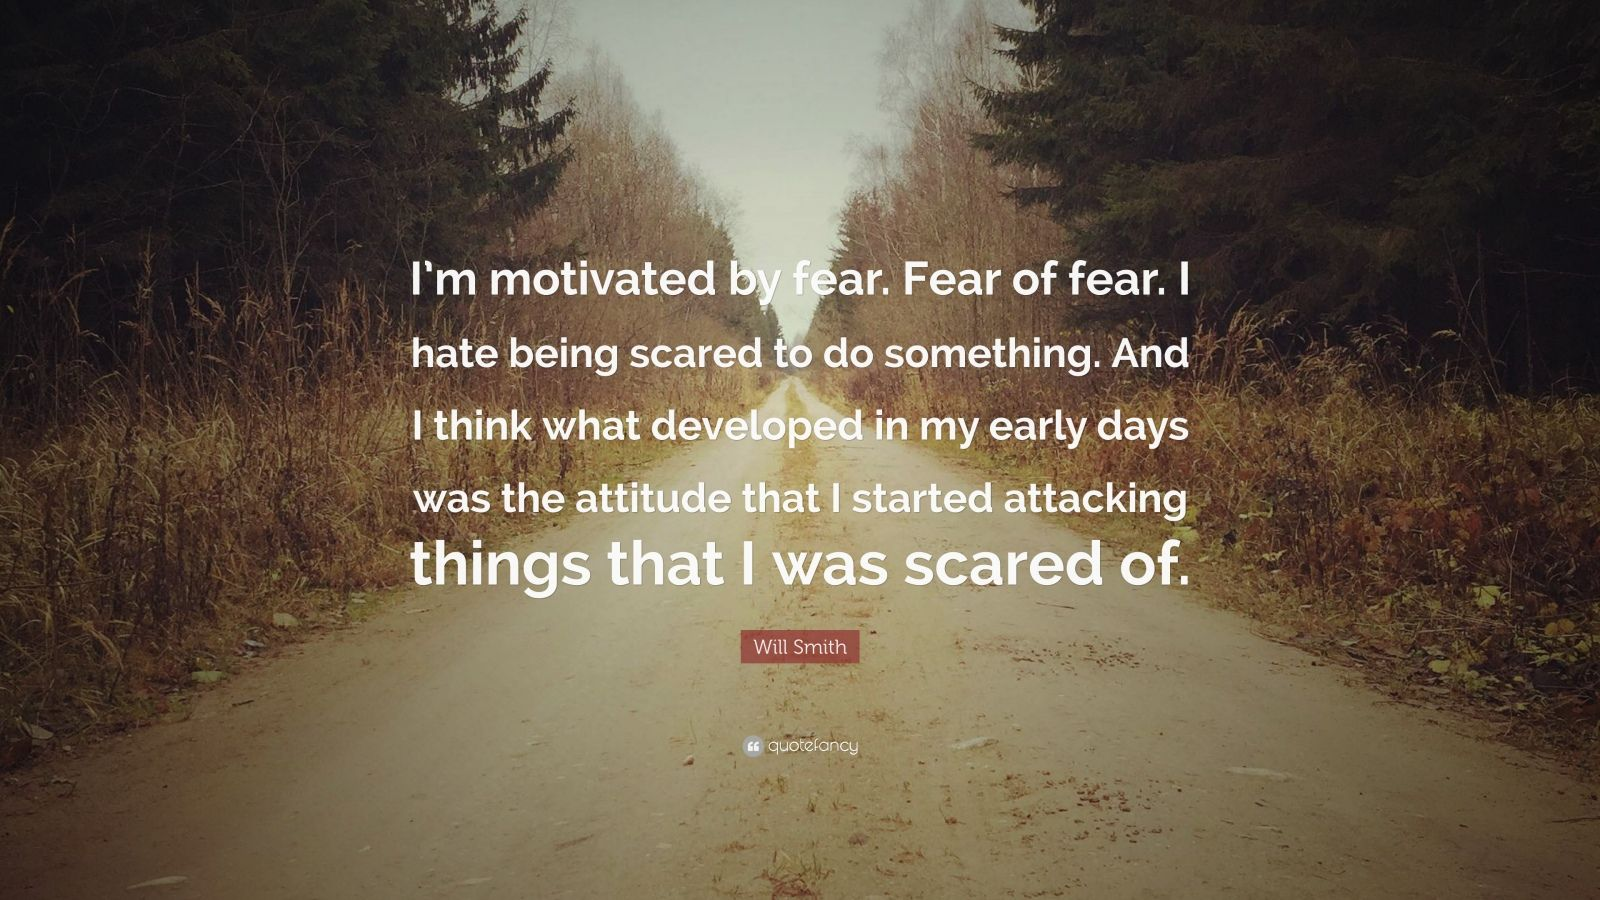 """Will Smith Quote: """"I'm motivated by fear. Fear of fear. I hate being scared to do something. And I think what developed in my early days was the attitude that I started attacking things that I was scared of."""""""